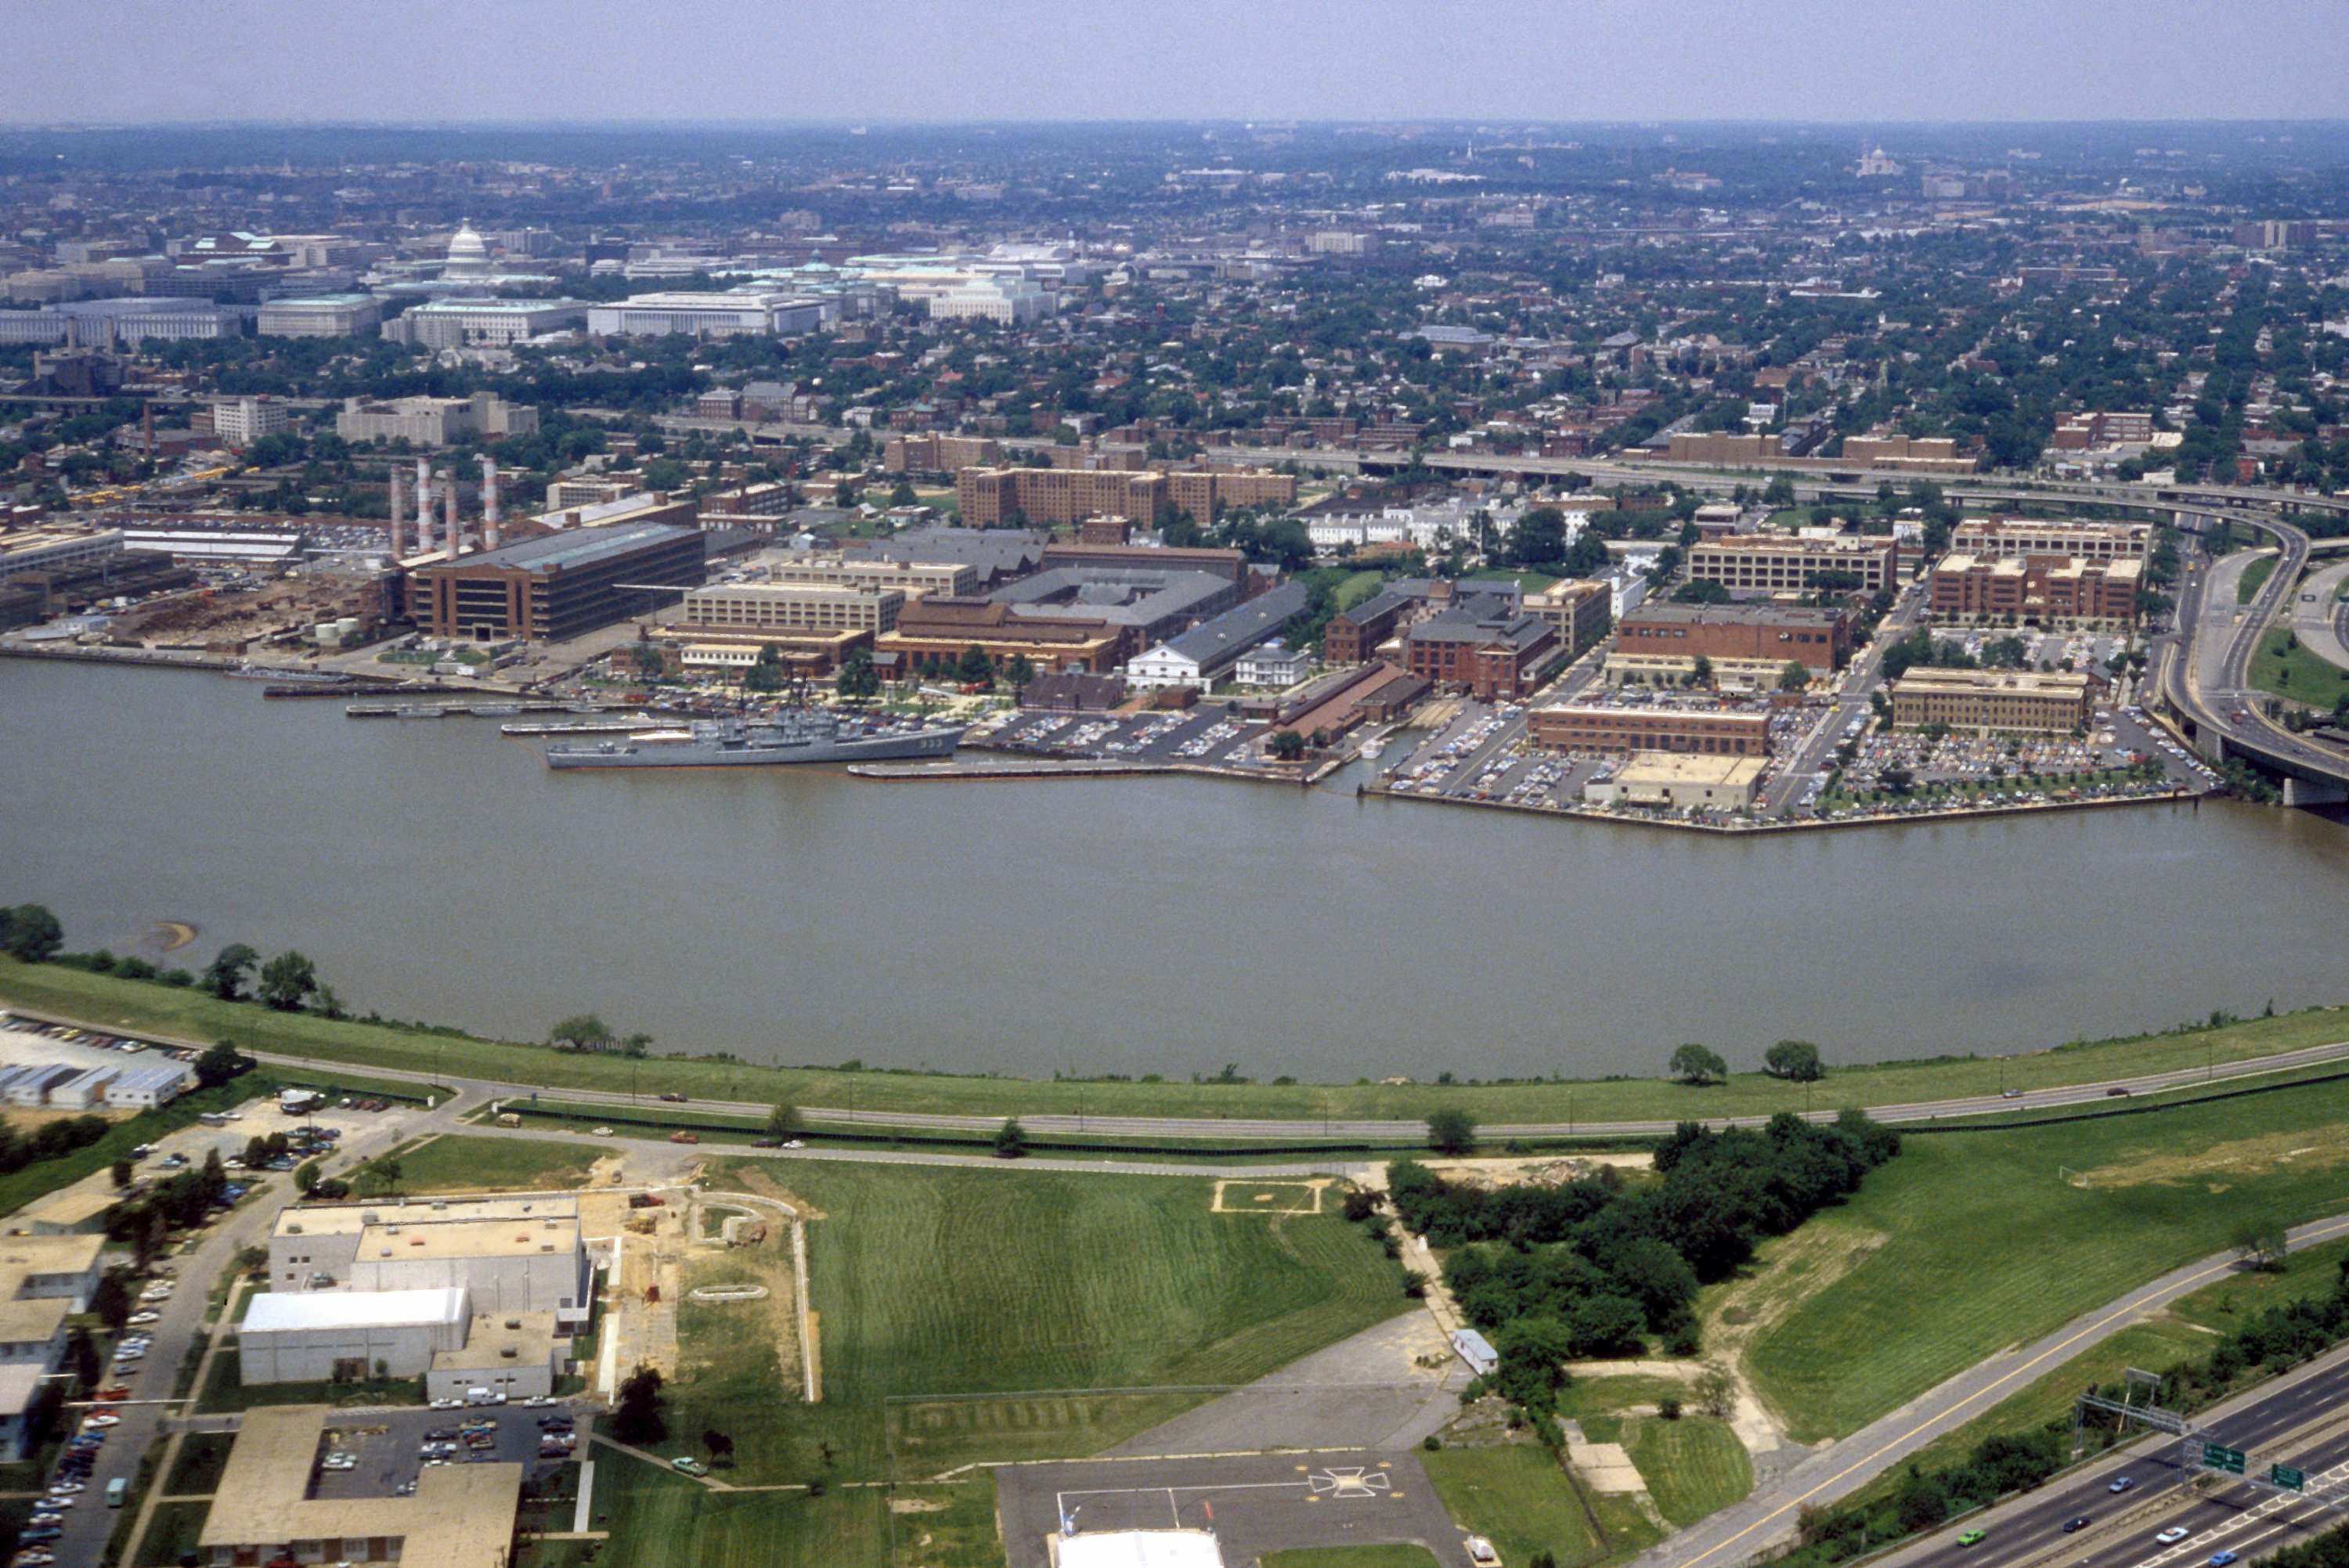 Washington_Navy_Yard_aerial_view_1985